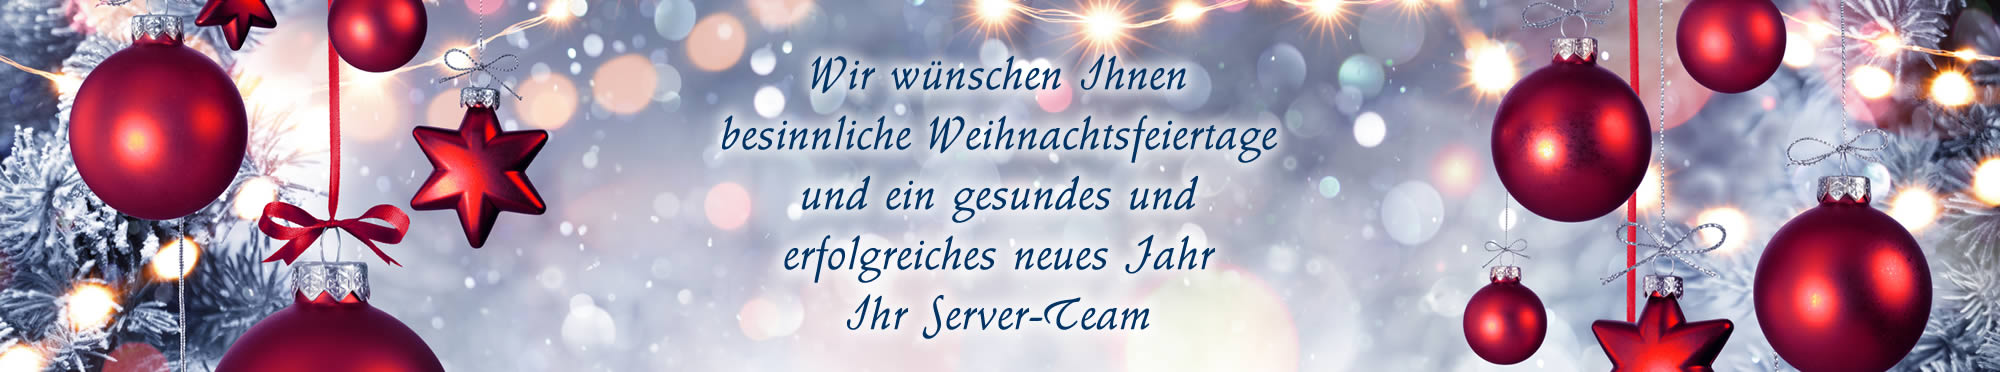 Server-Team Weihnachten